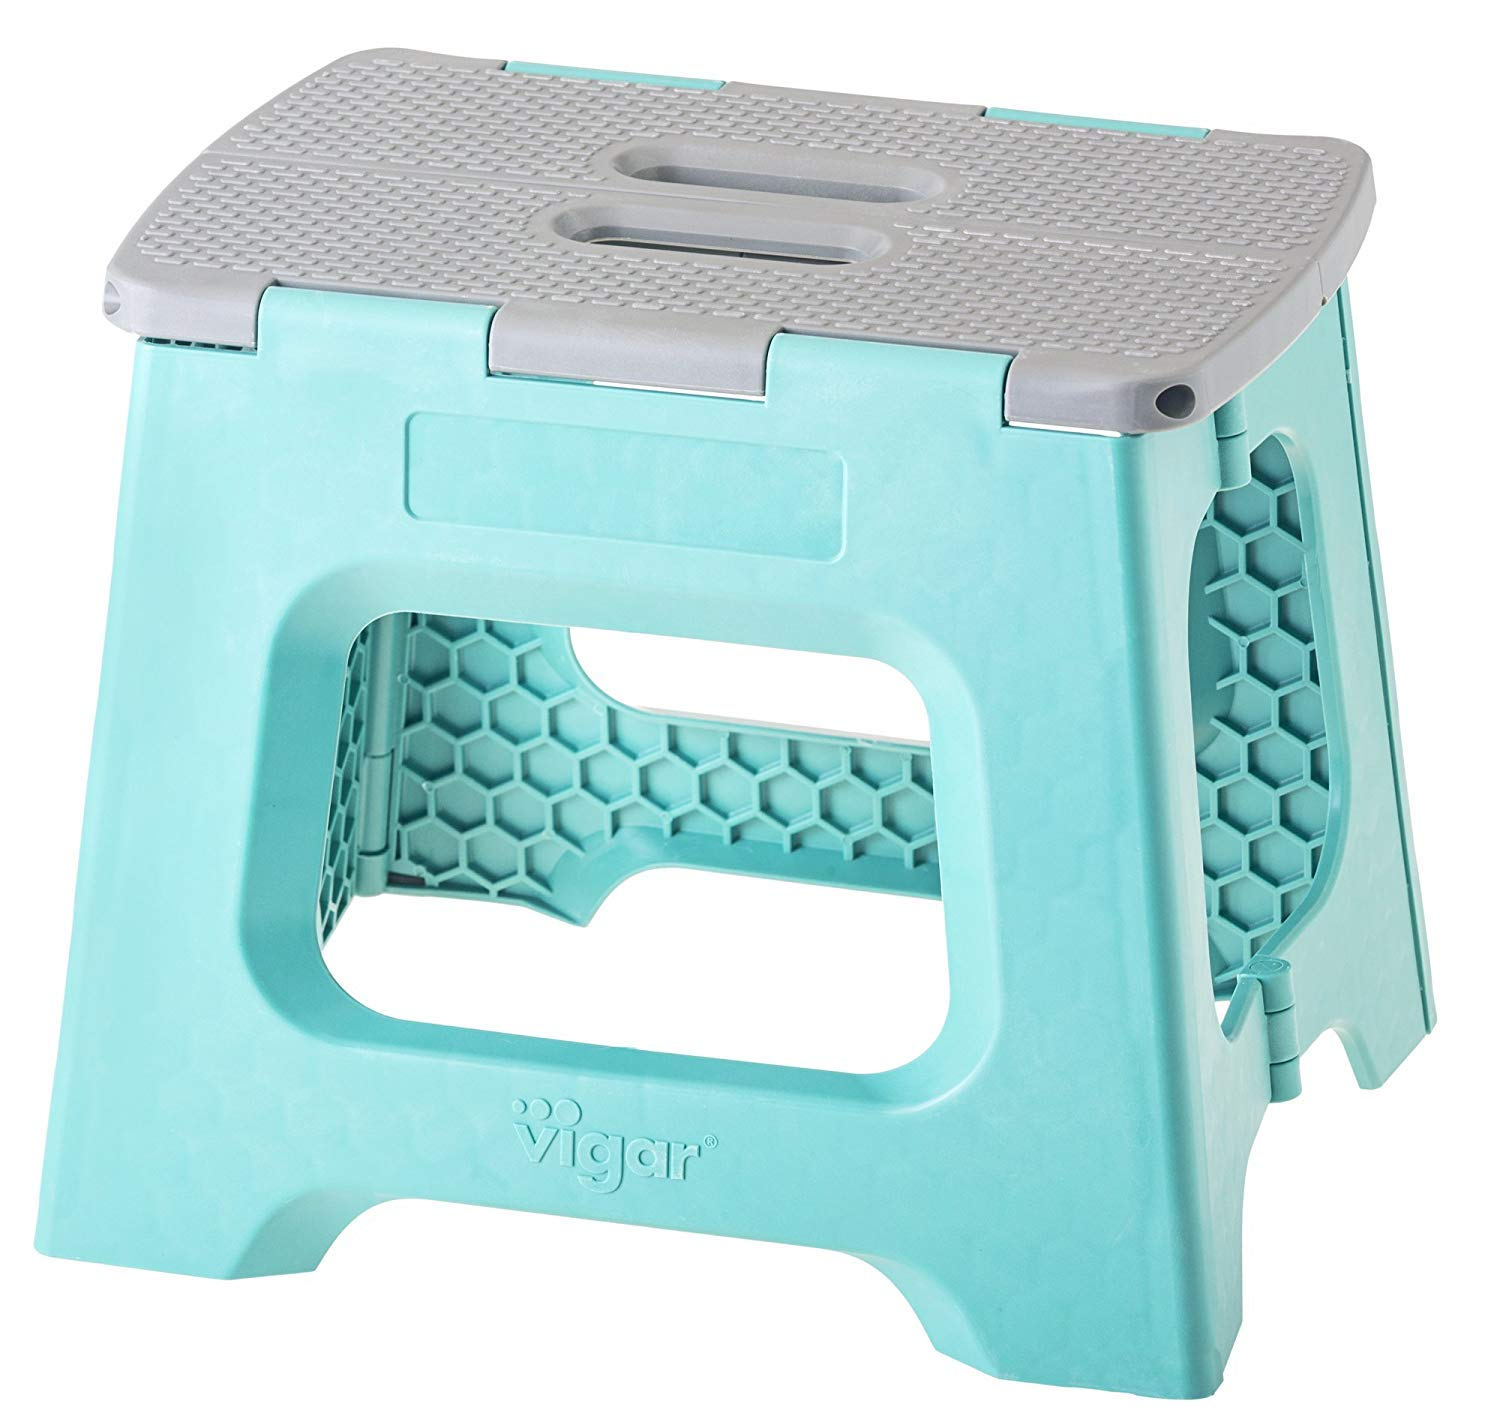 Vigar Compact Foldable Stool, 11 inches, Lightweight, 330-pound Capacity Non-Slip Folding Step Stool for Kids and Adults, Turquoise